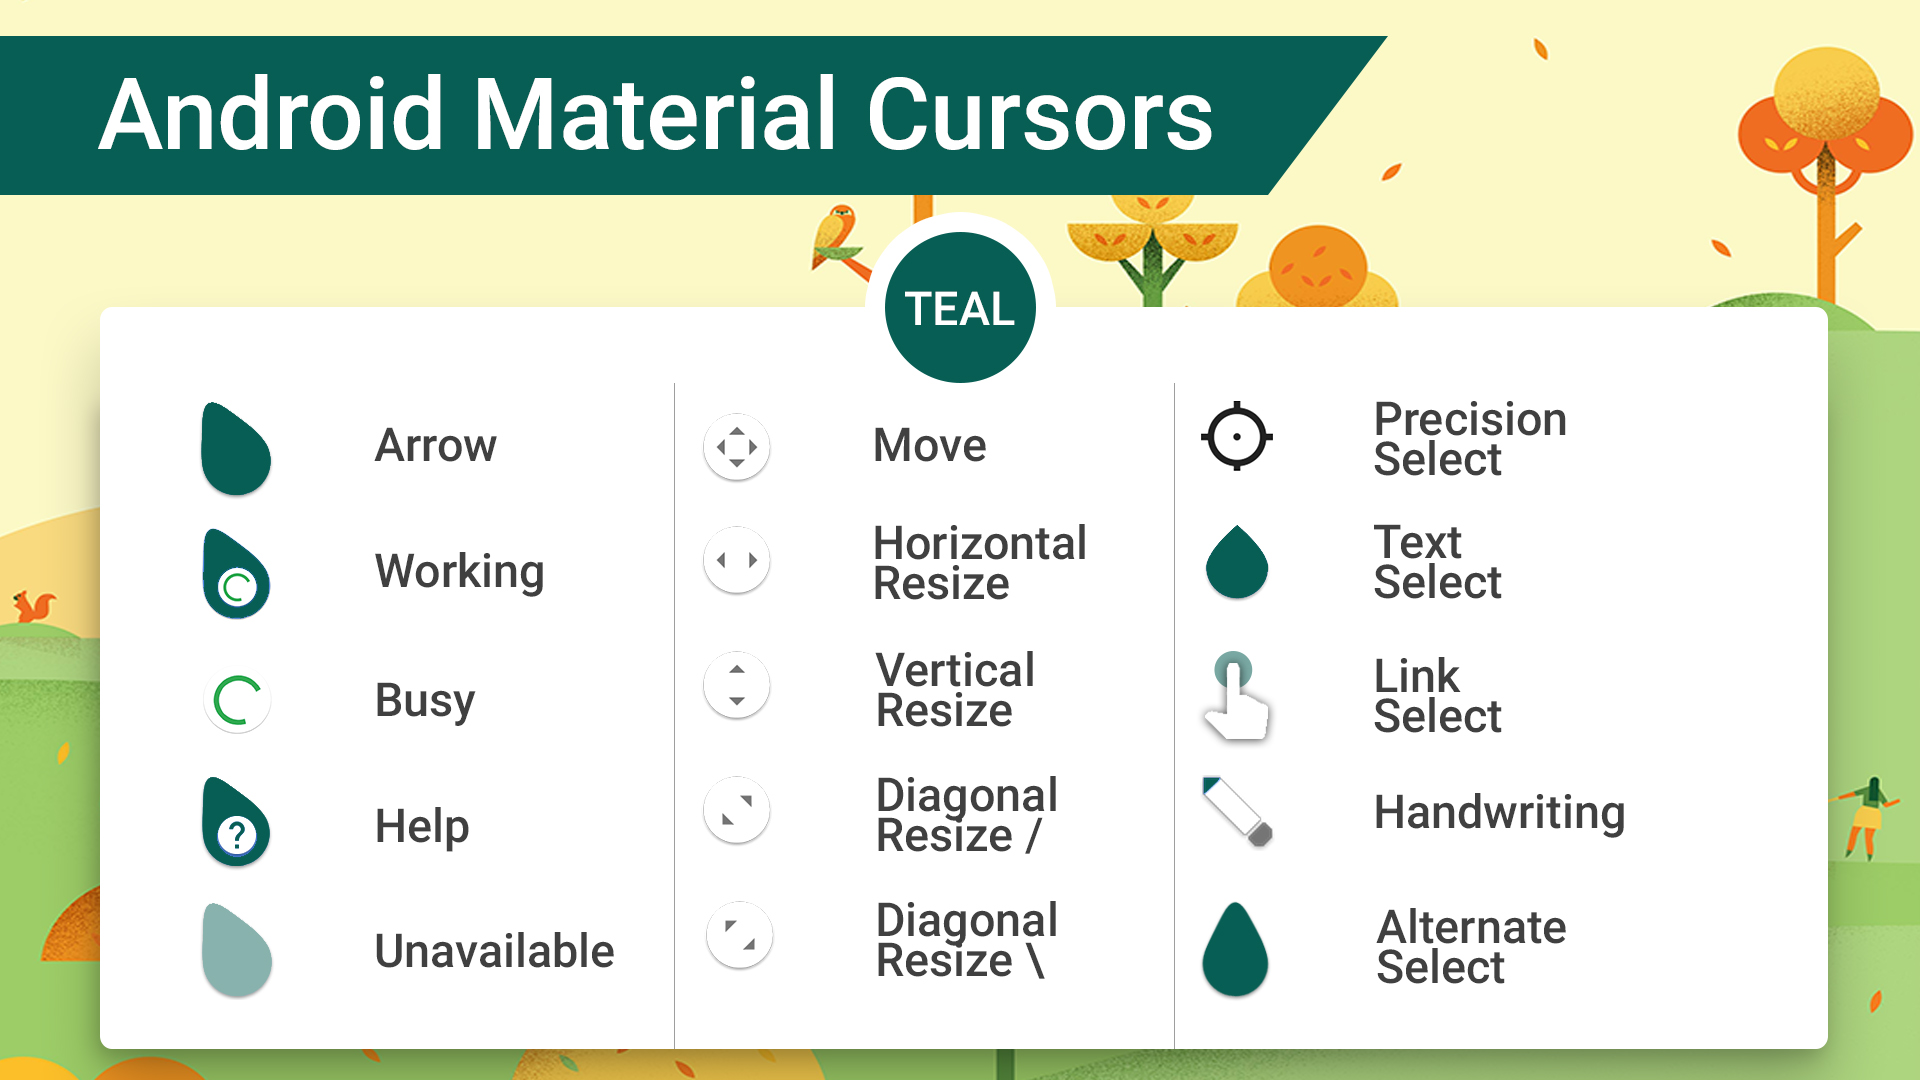 Android Material Cursors (Teal)